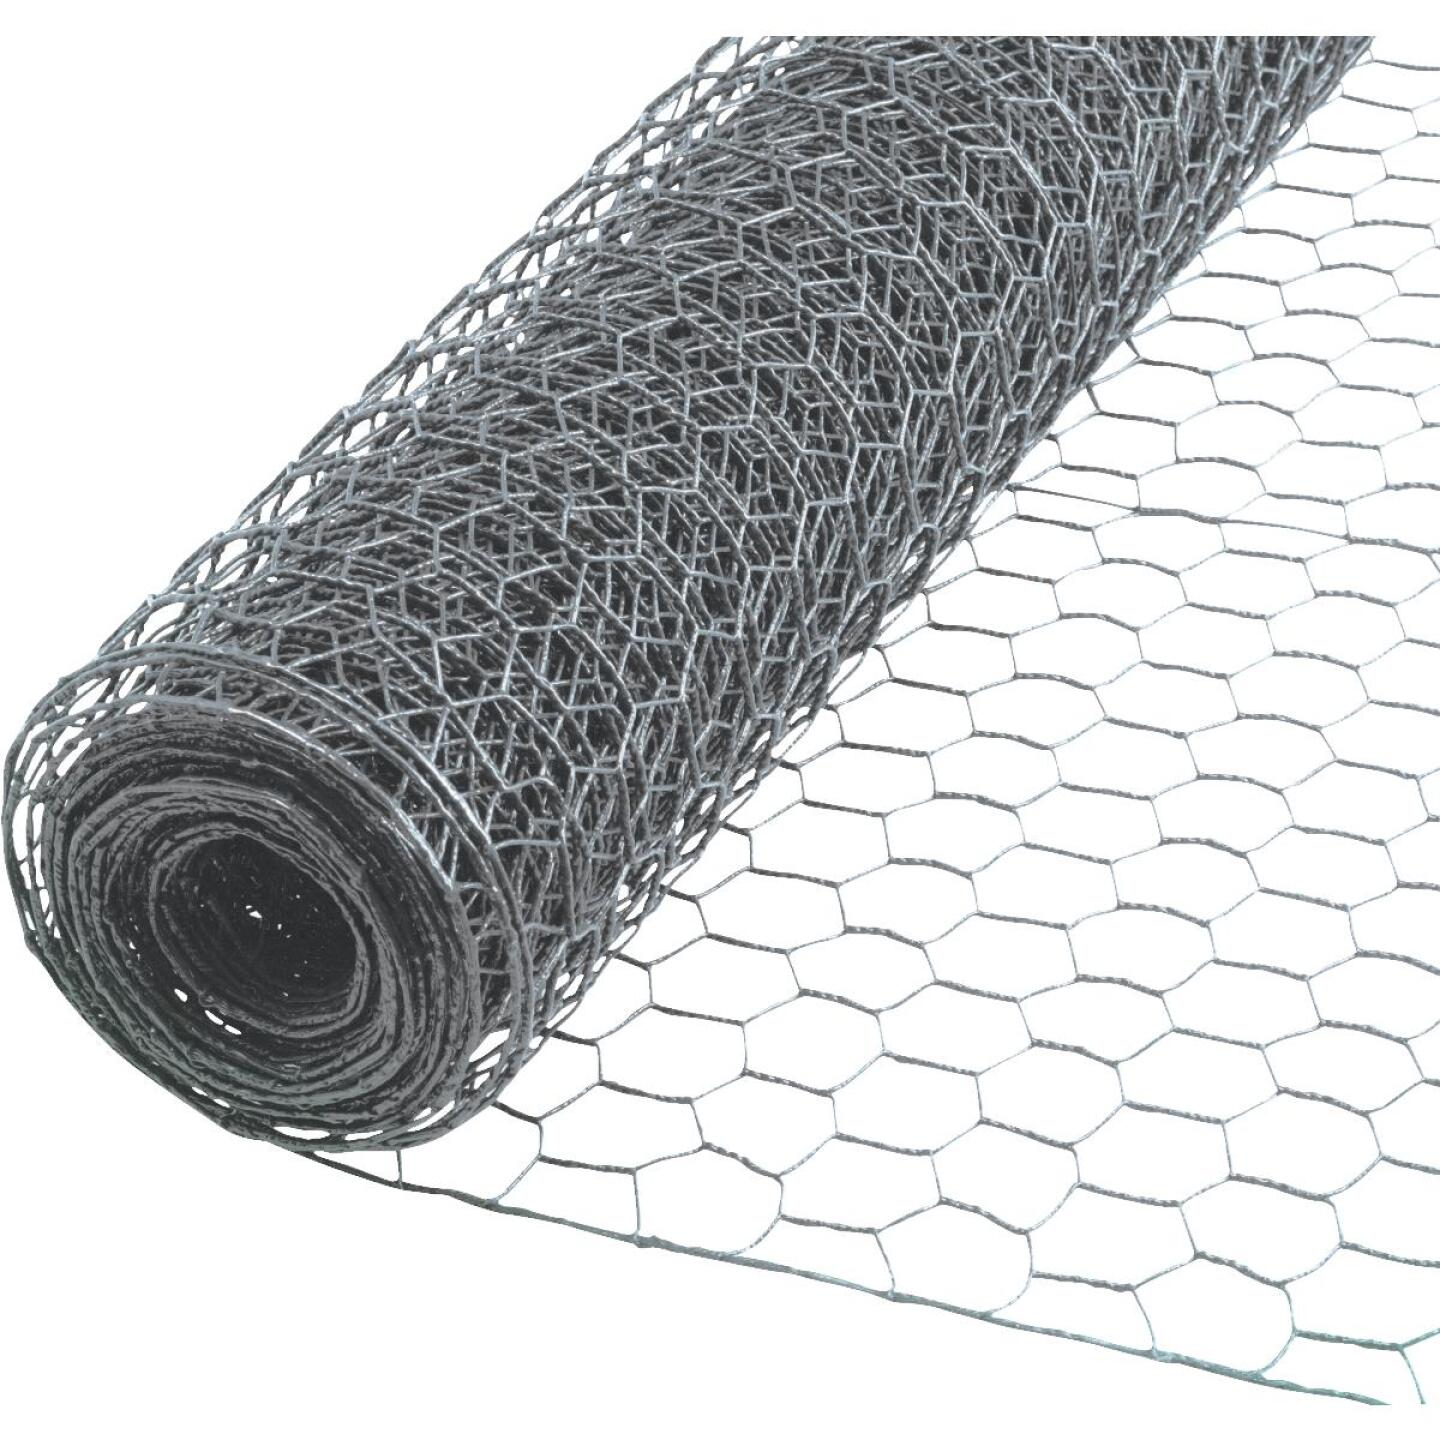 Do it 2 In. x 48 In. H. x 150 Ft. L. Hexagonal Wire Poultry Netting Image 1